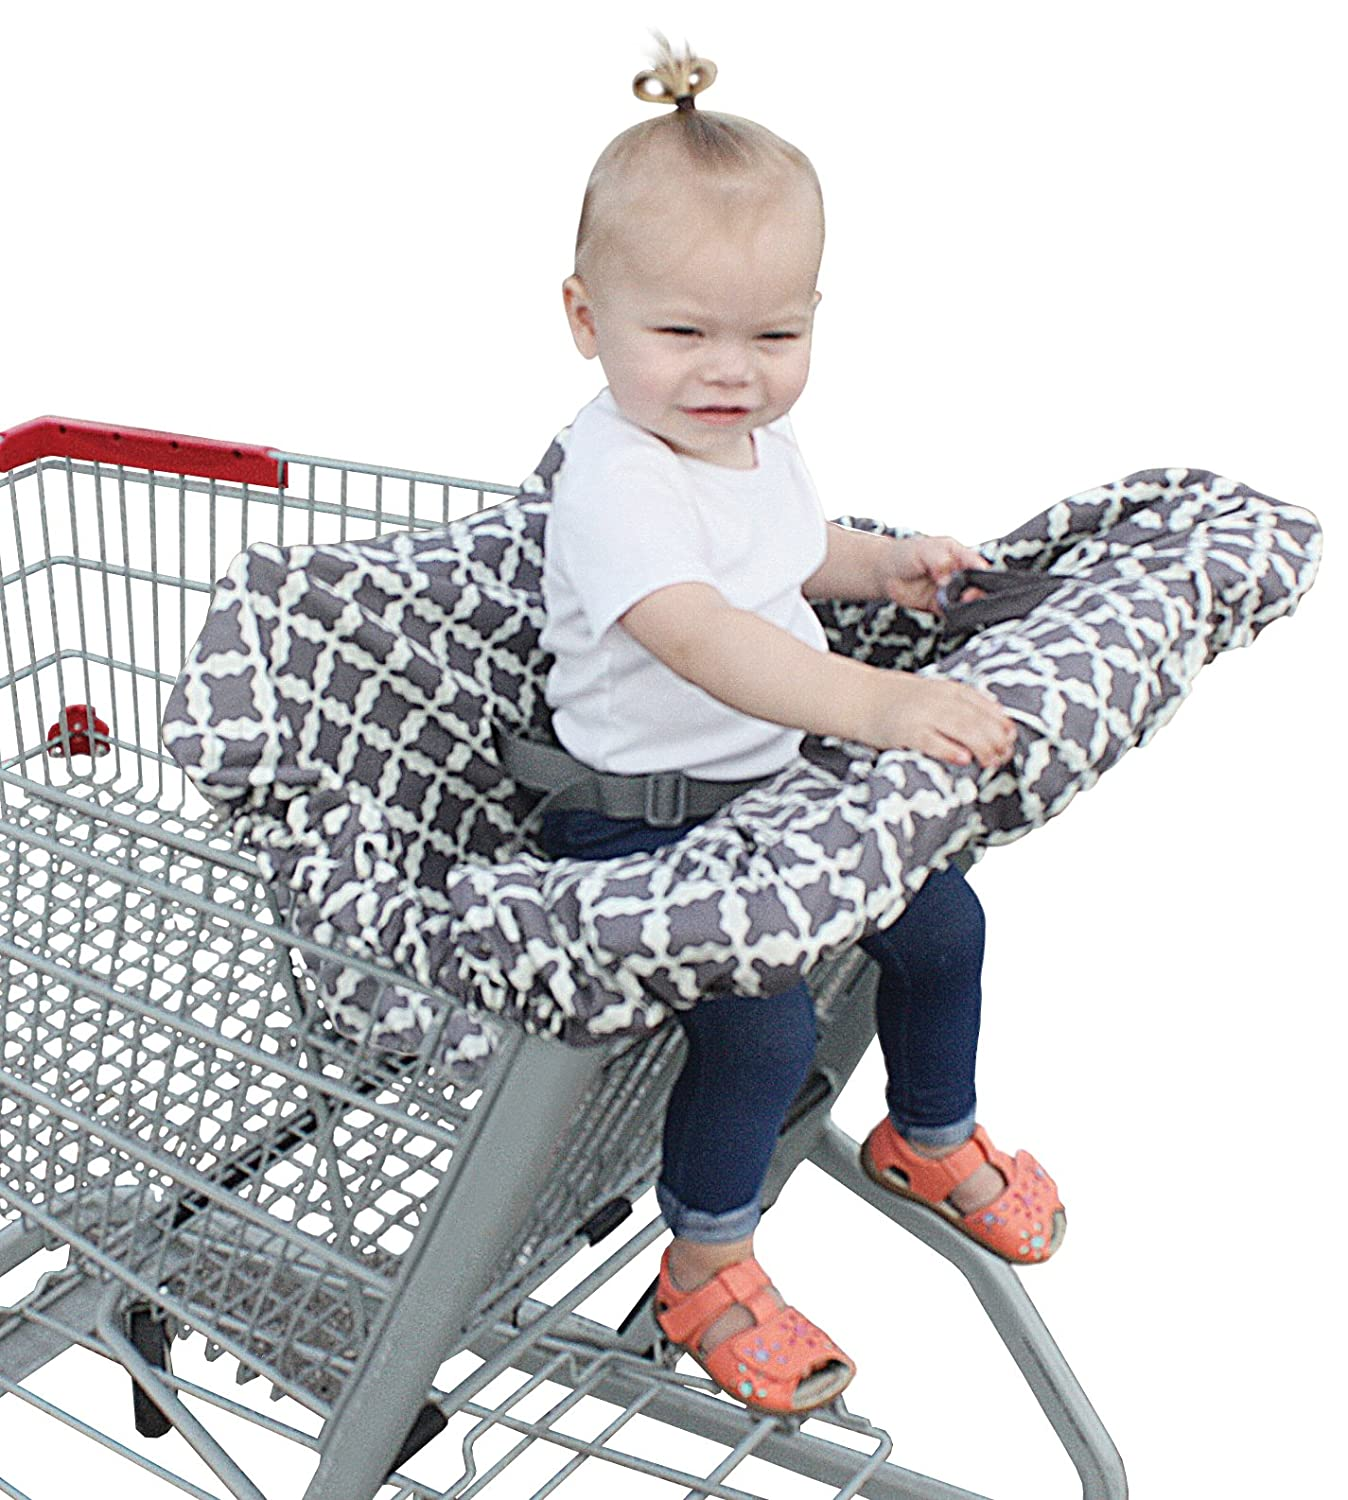 Jolly Jumper Deluxe Sani-Shopper Shopping Cart Cover with Safety Belt